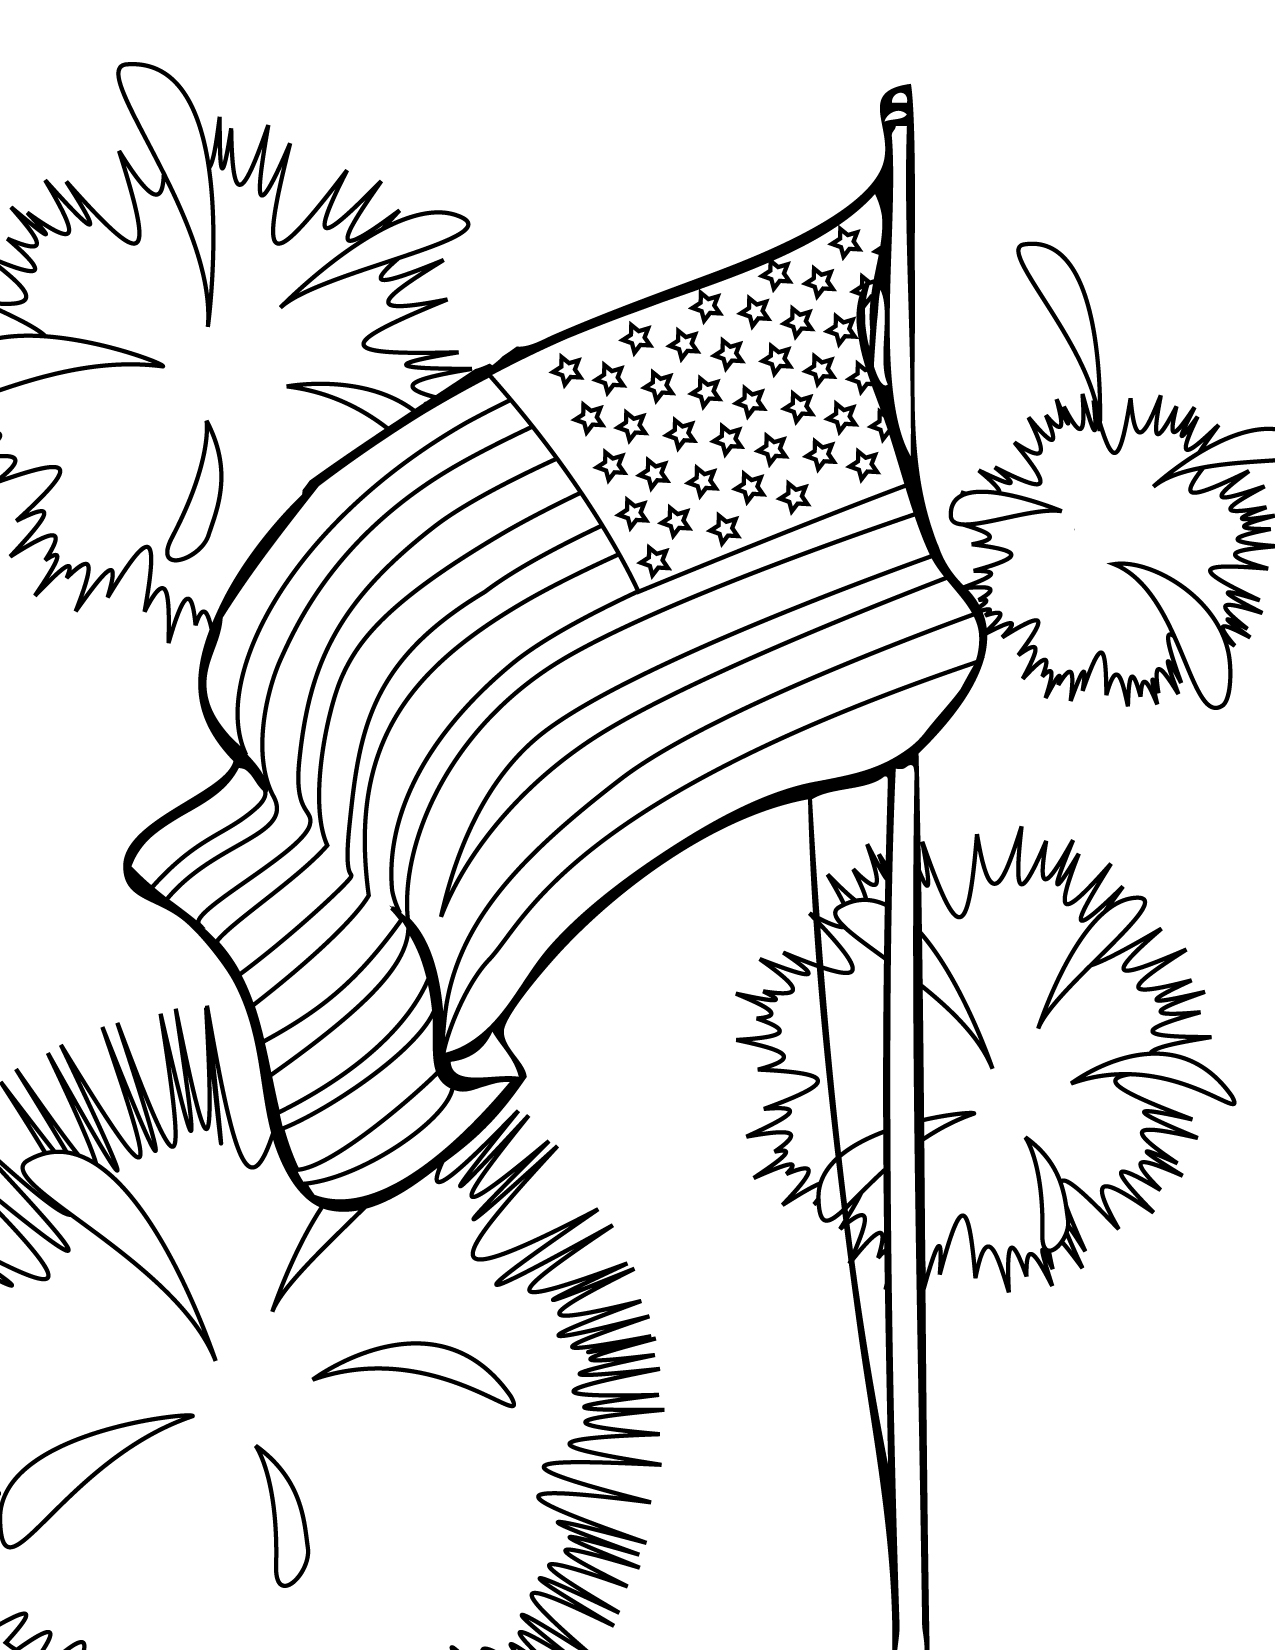 july 4 coloring pages free printable fourth of july coloring pages 4 designs 4 pages july coloring